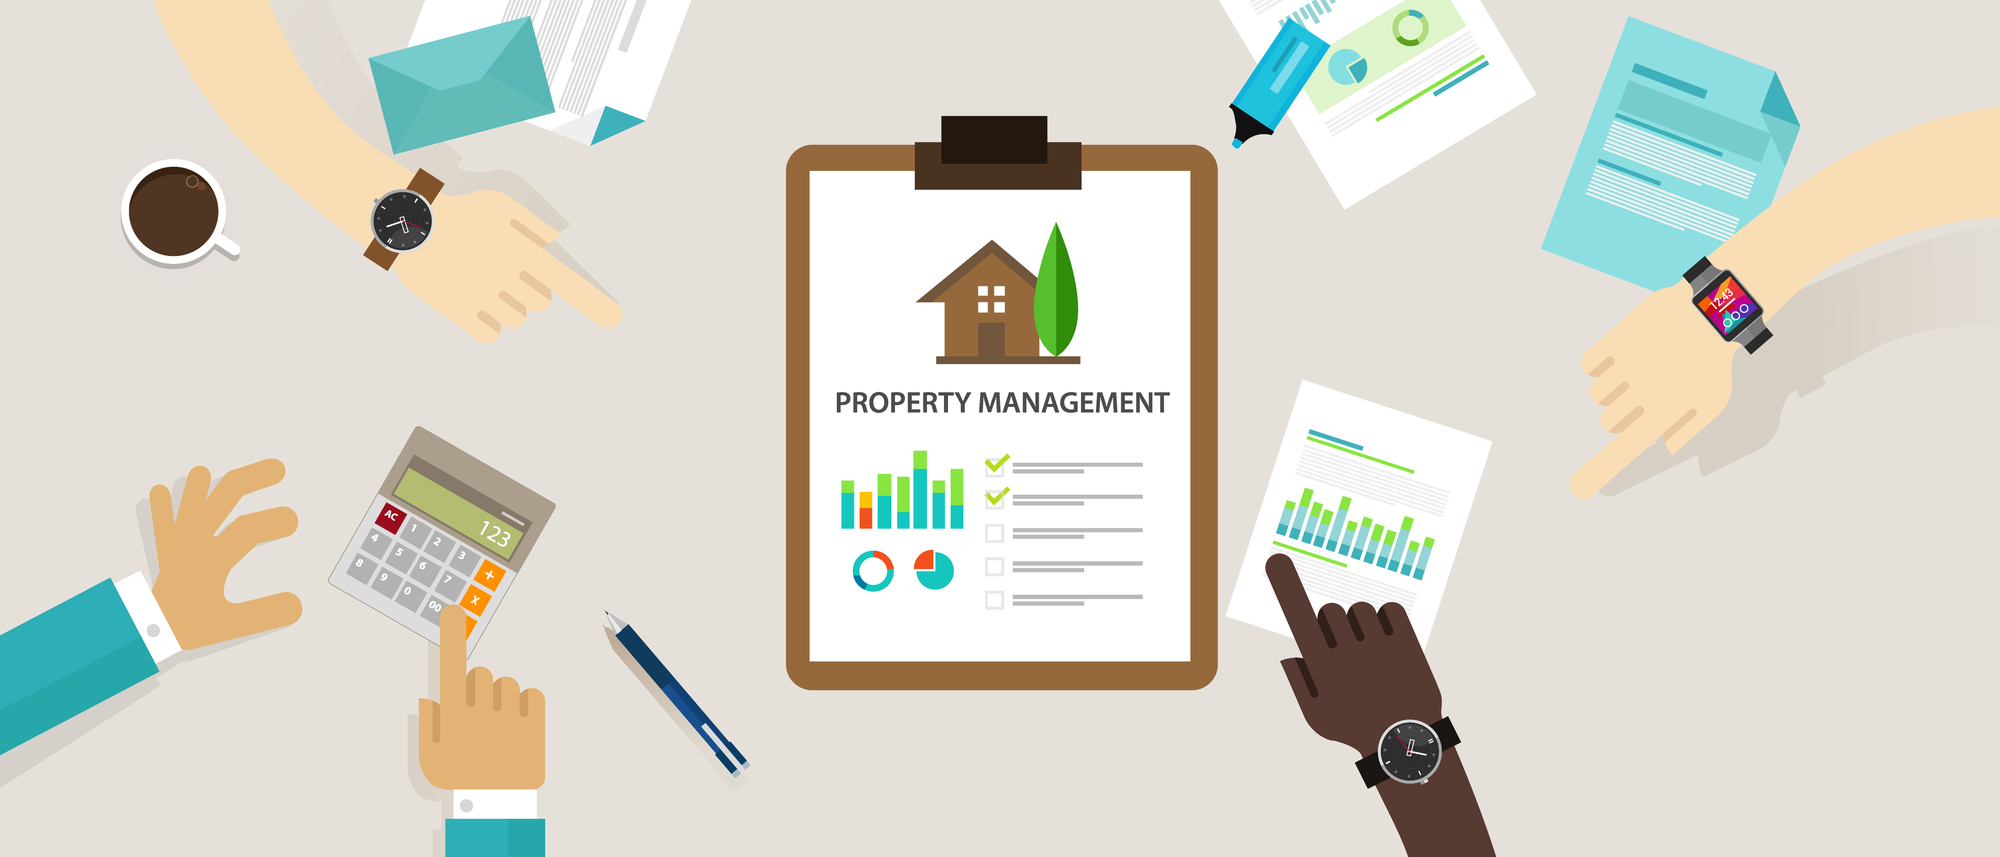 Difference Between Residential and Commercial Property Management